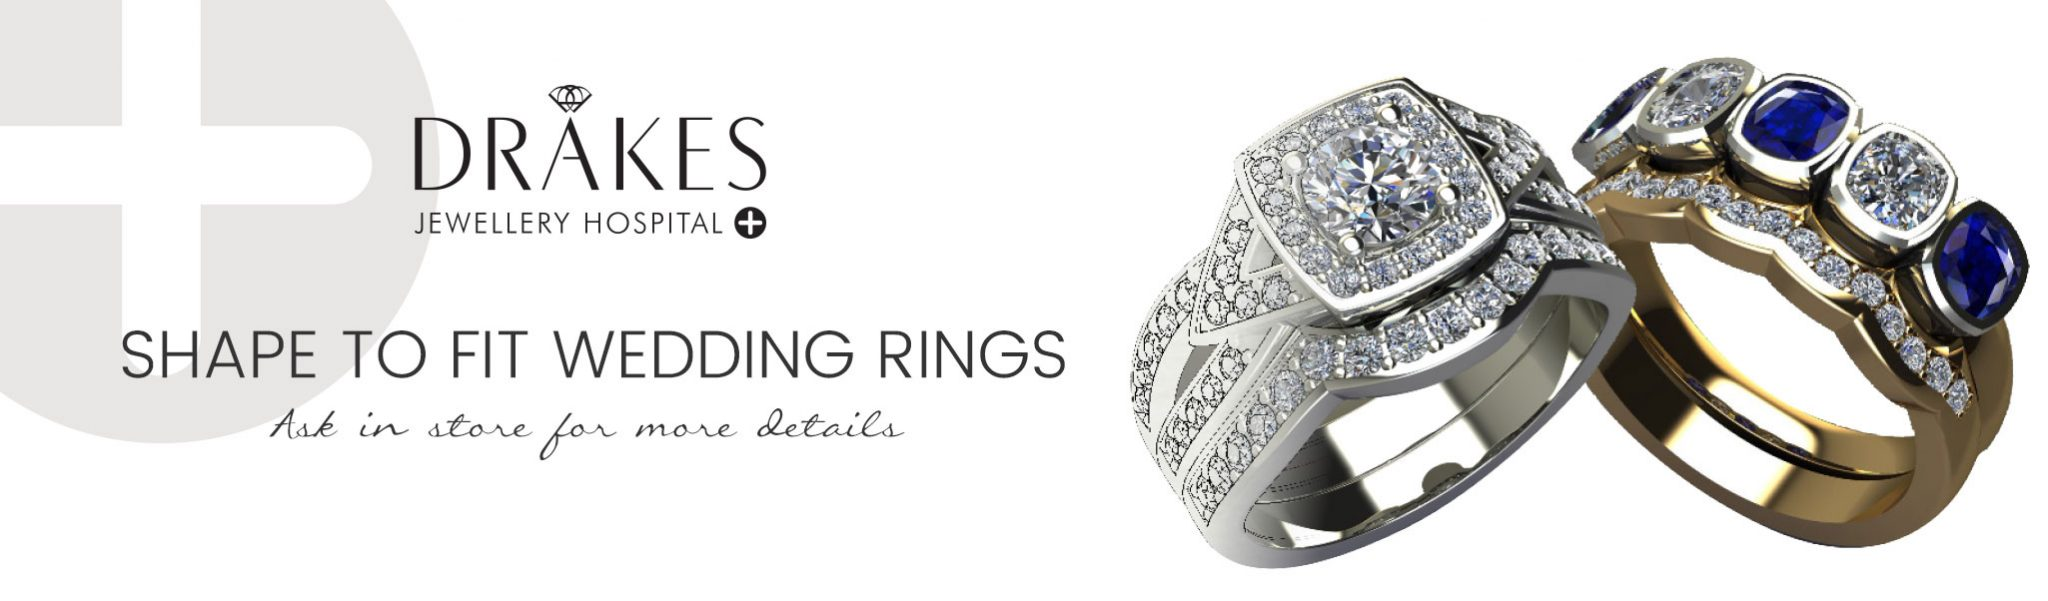 Shape to fit wedding rings, Drakes Jewellery Hospital, Drakes Jewellers